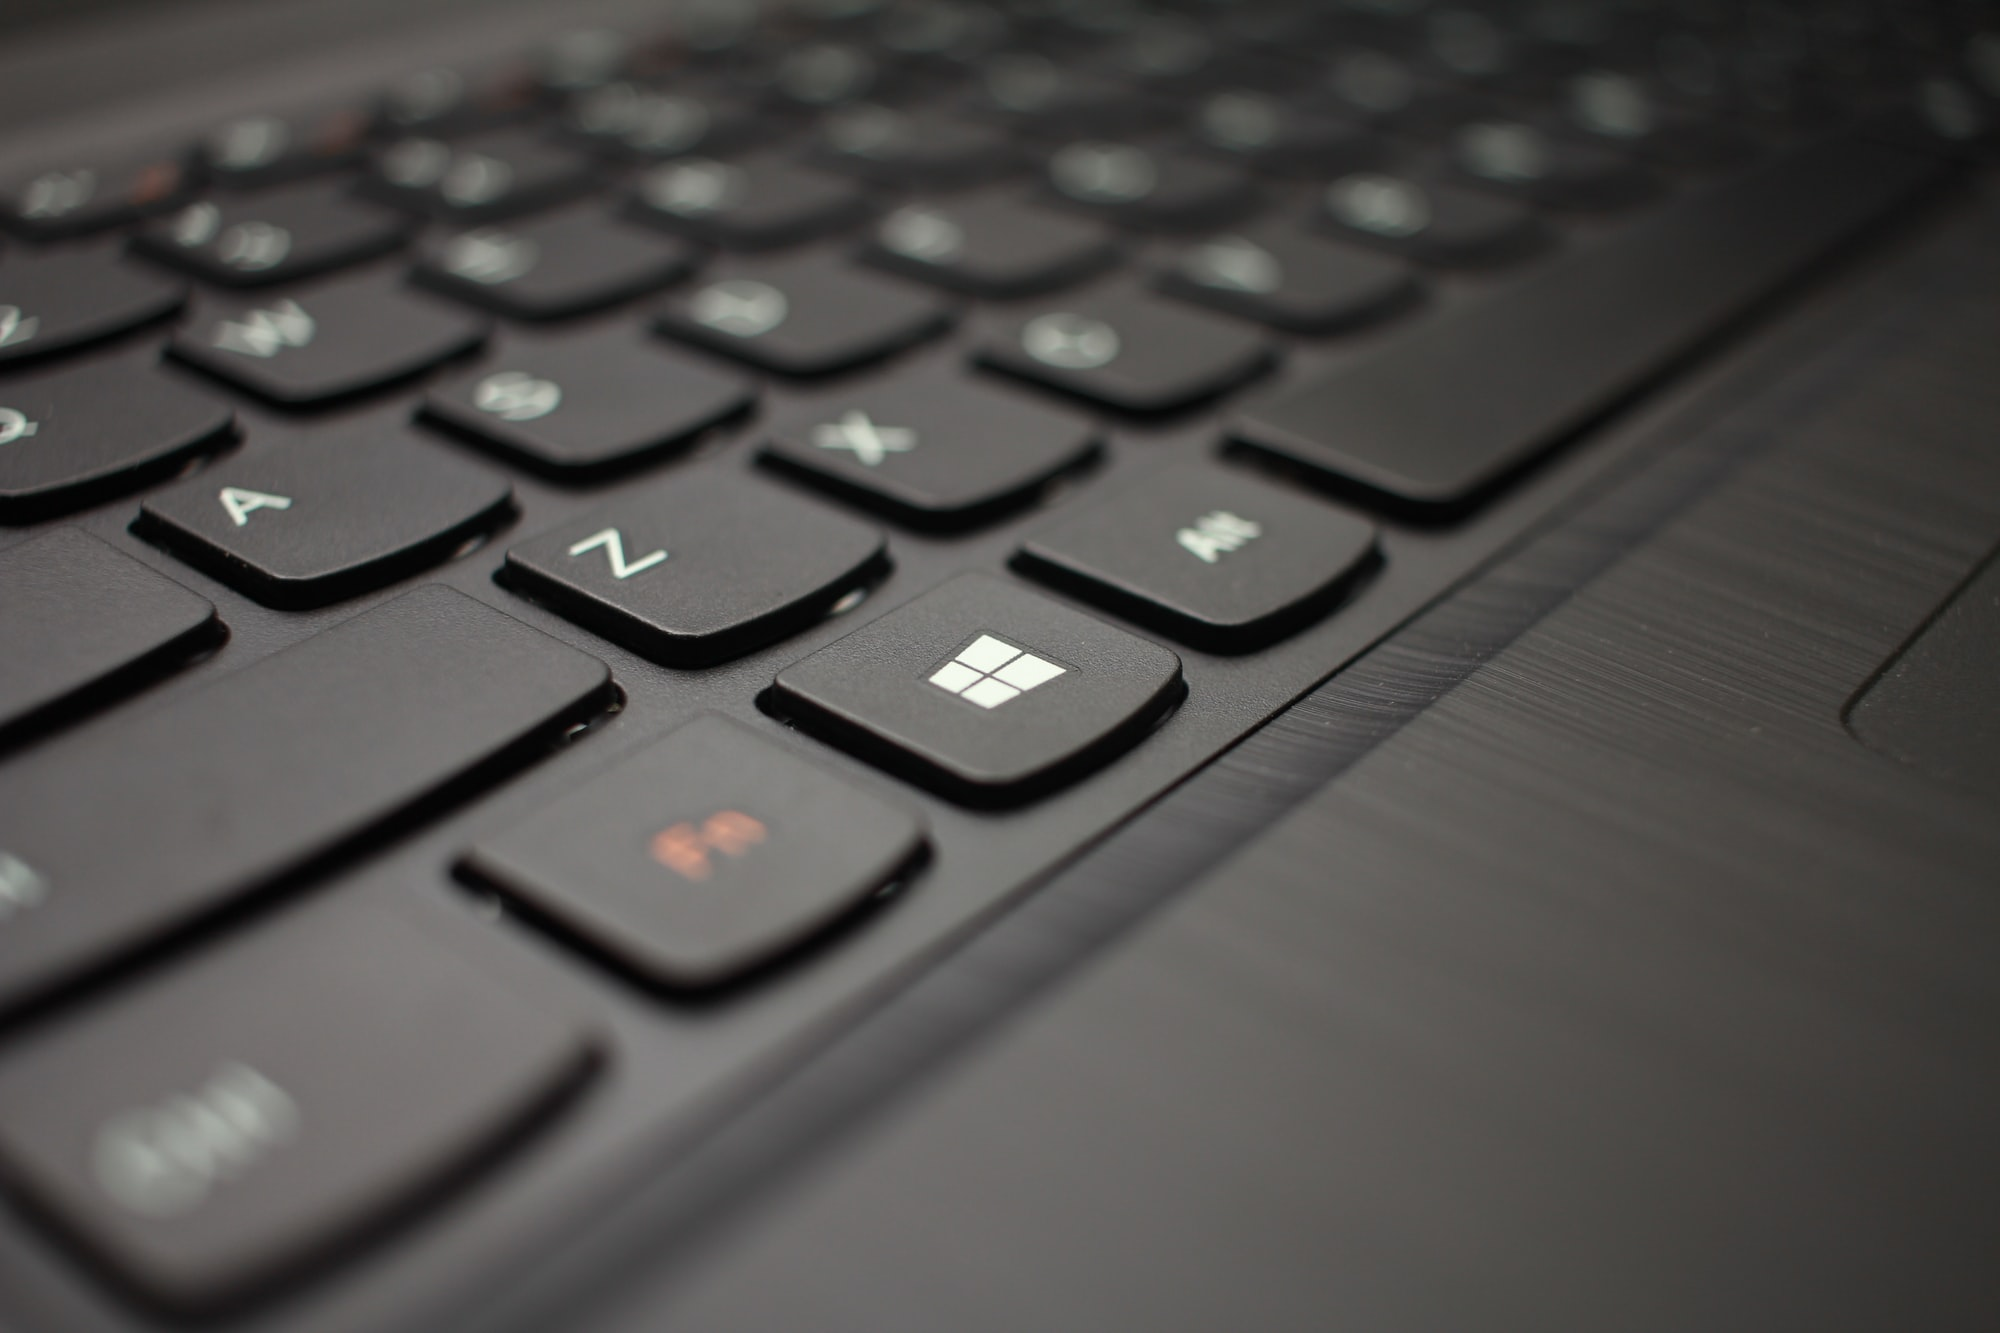 Alt Codes – How to Type Special Characters and Keyboard Symbols on Windows Using the Alt Keys